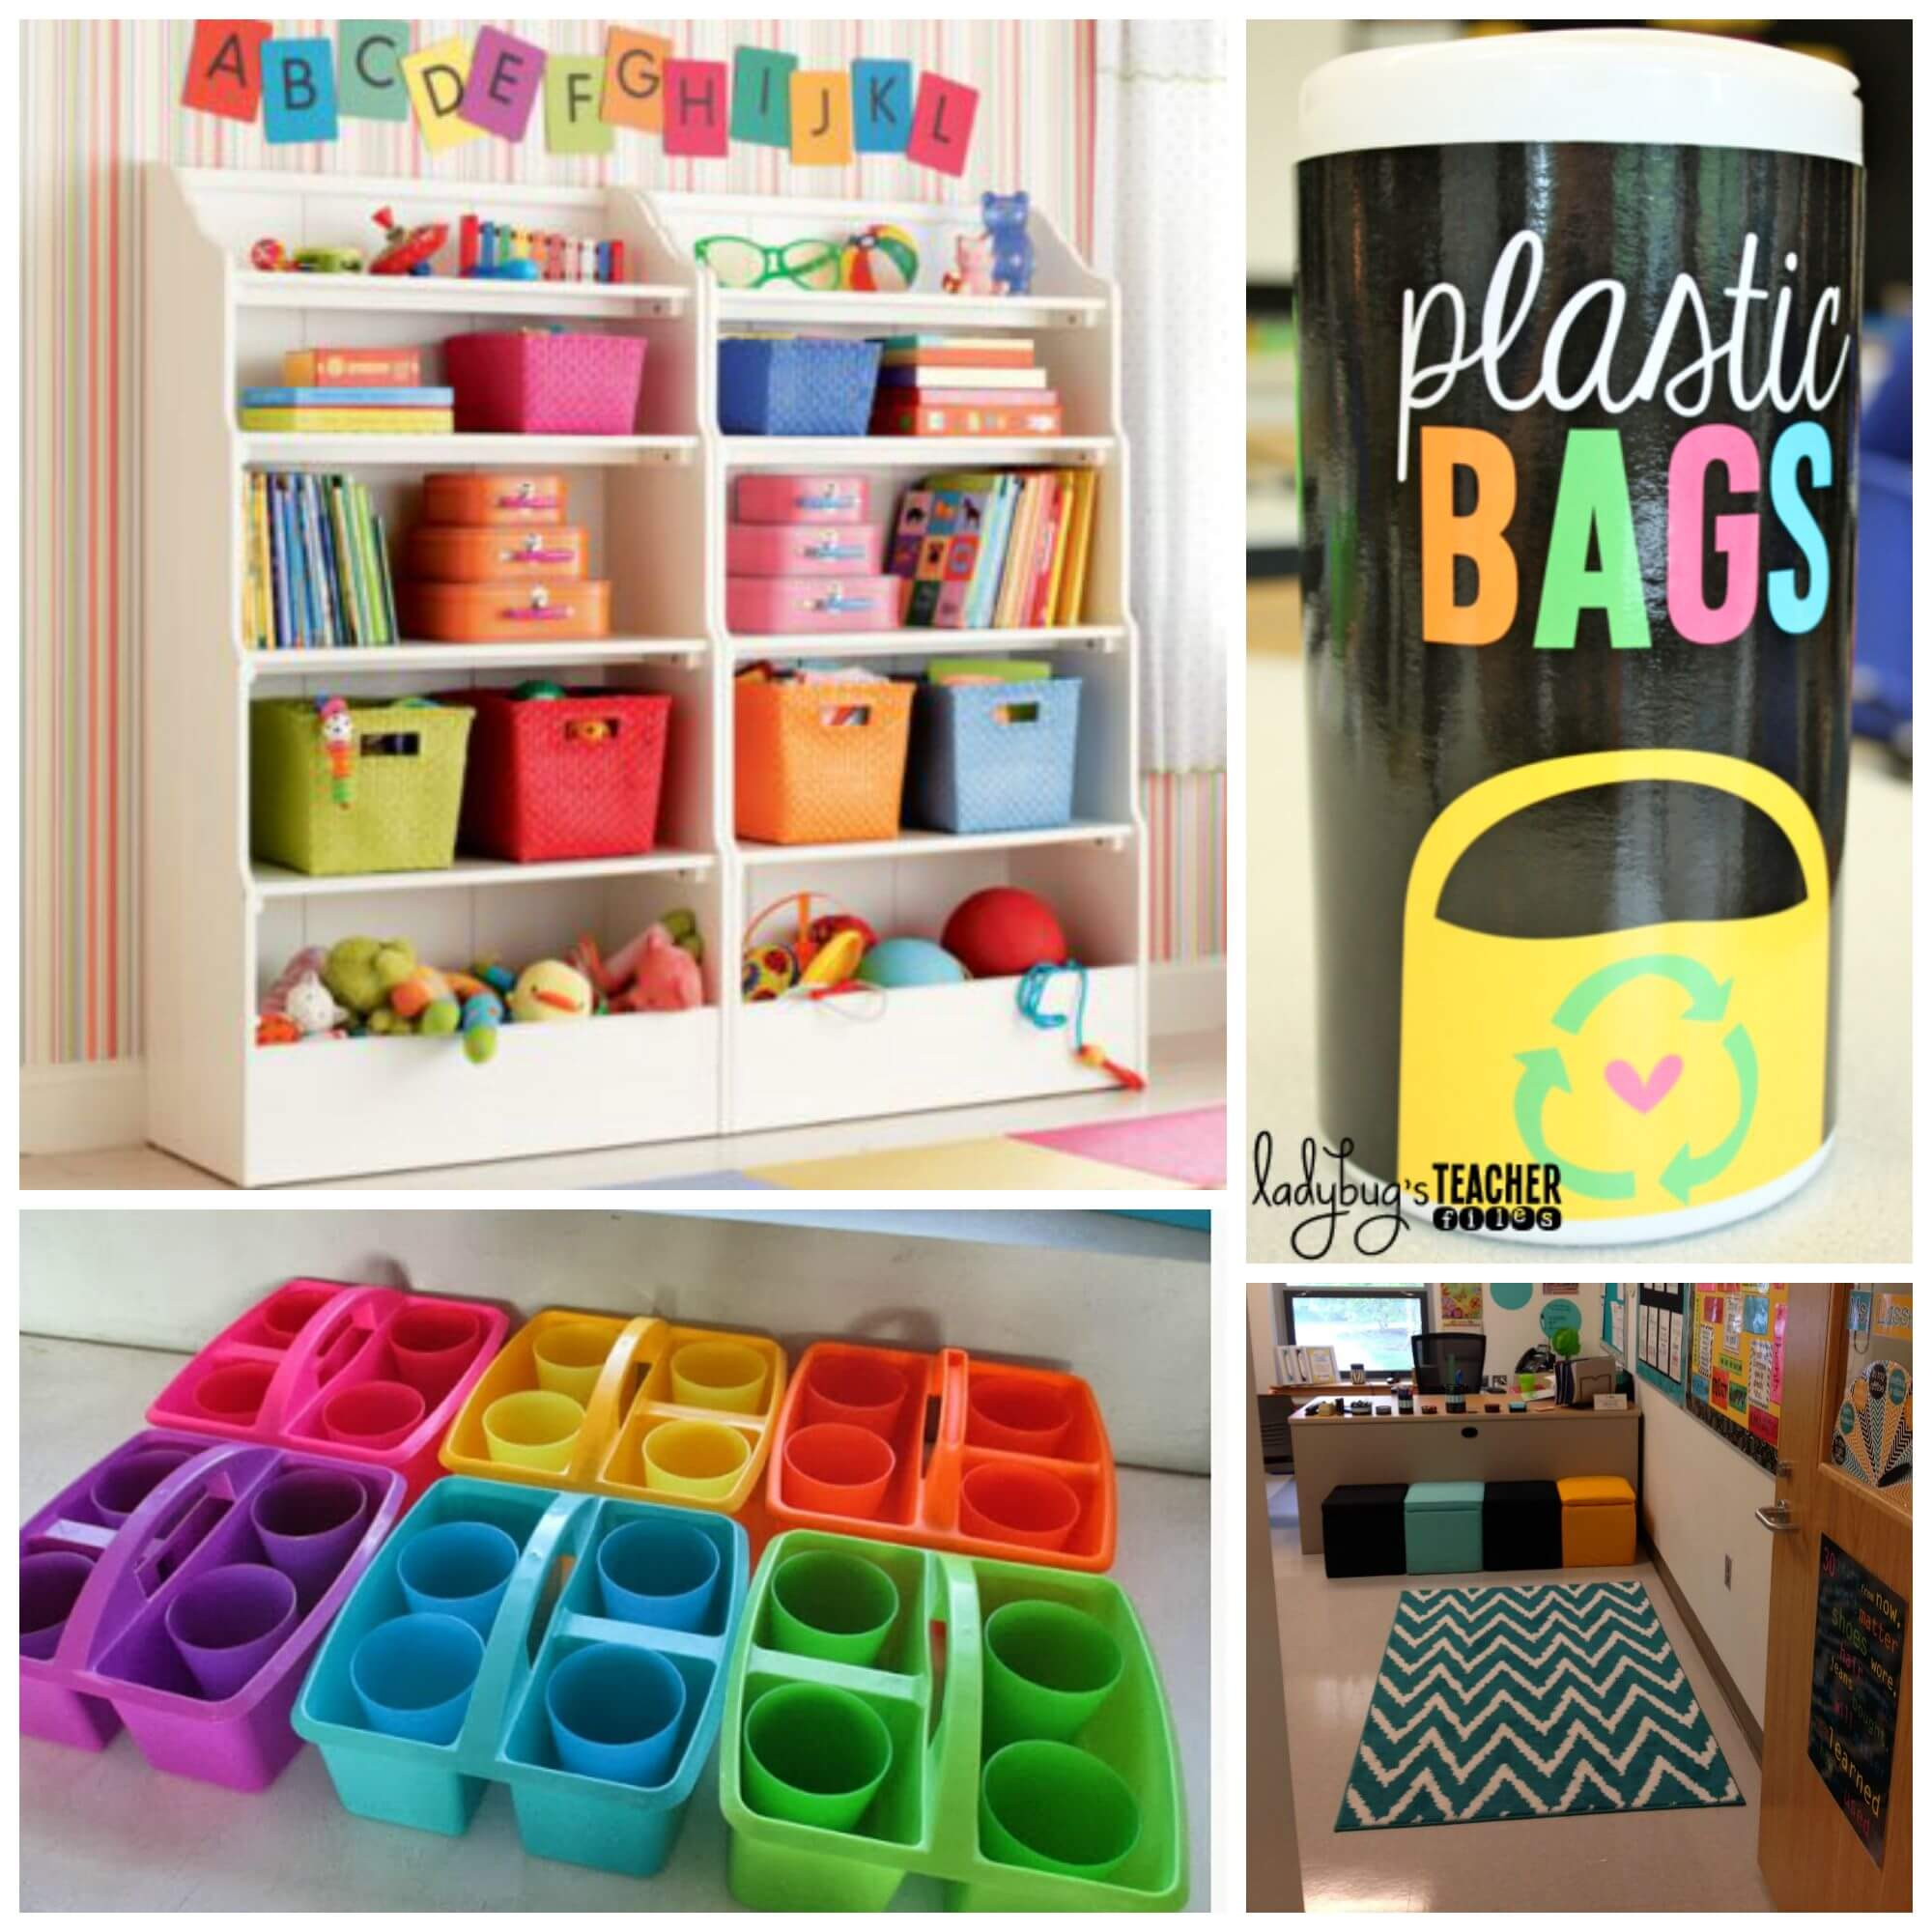 Teaching Ideas In The Classroom : Inspiring classroom decoration ideas playdough to plato